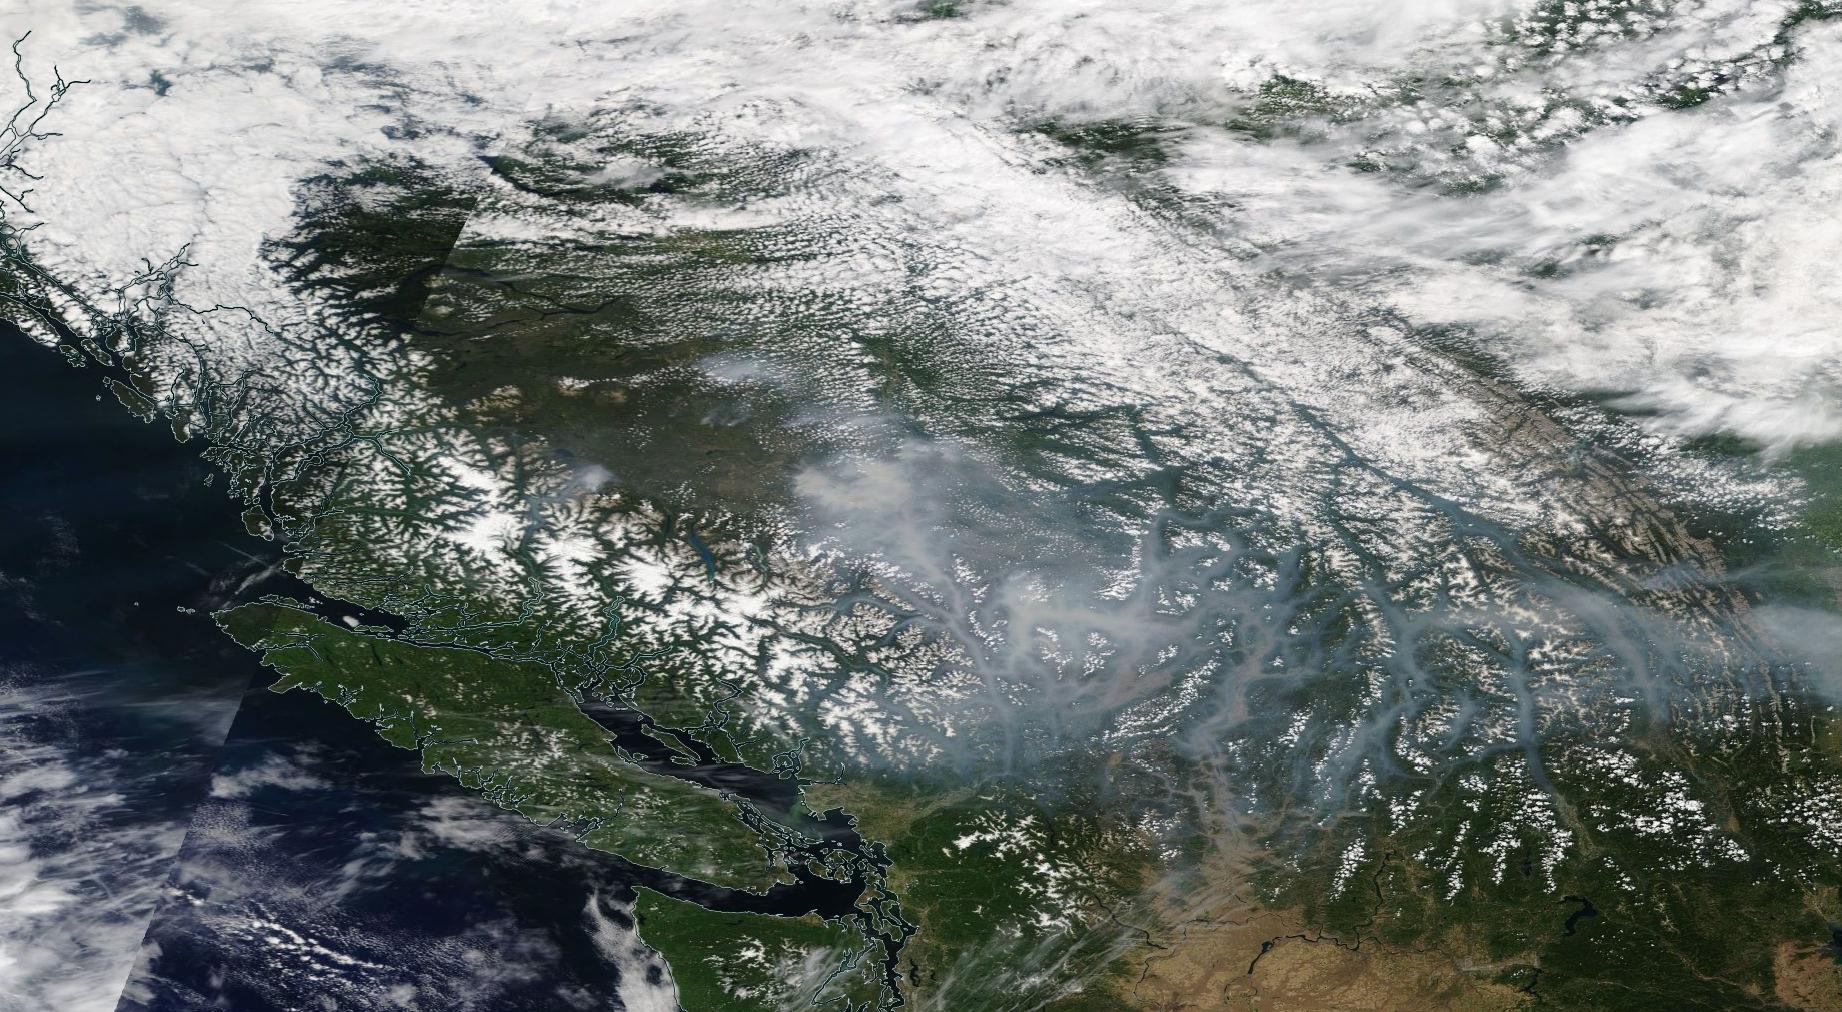 BC wildfire smoke as seen from space on July 17, 2017 (NASA)